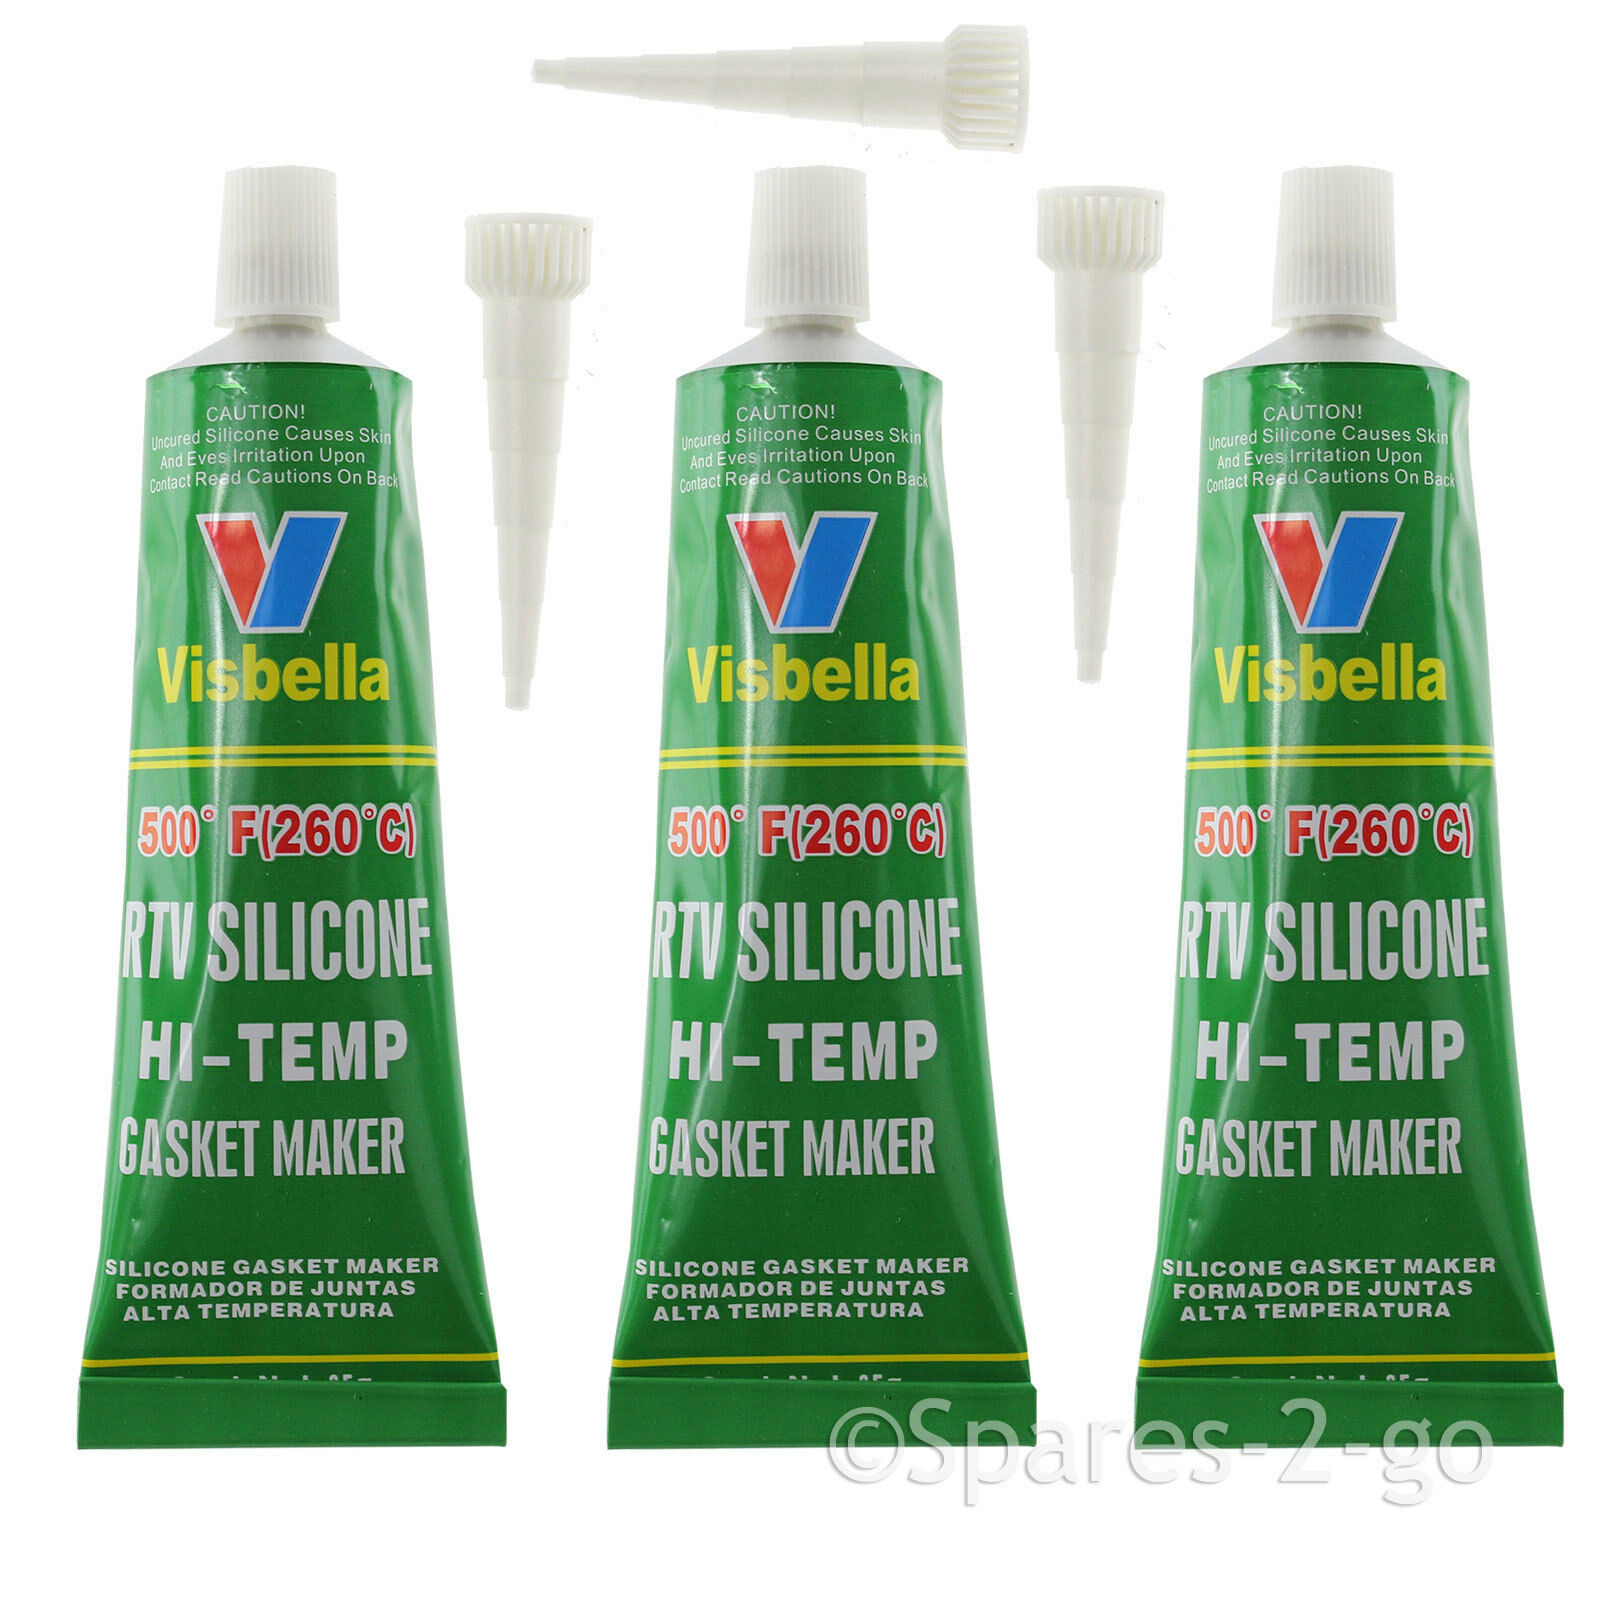 3 X Oven Glass Door Seal High Temperature Heat Resistant Glue Silicone 255g 1 Of 4free